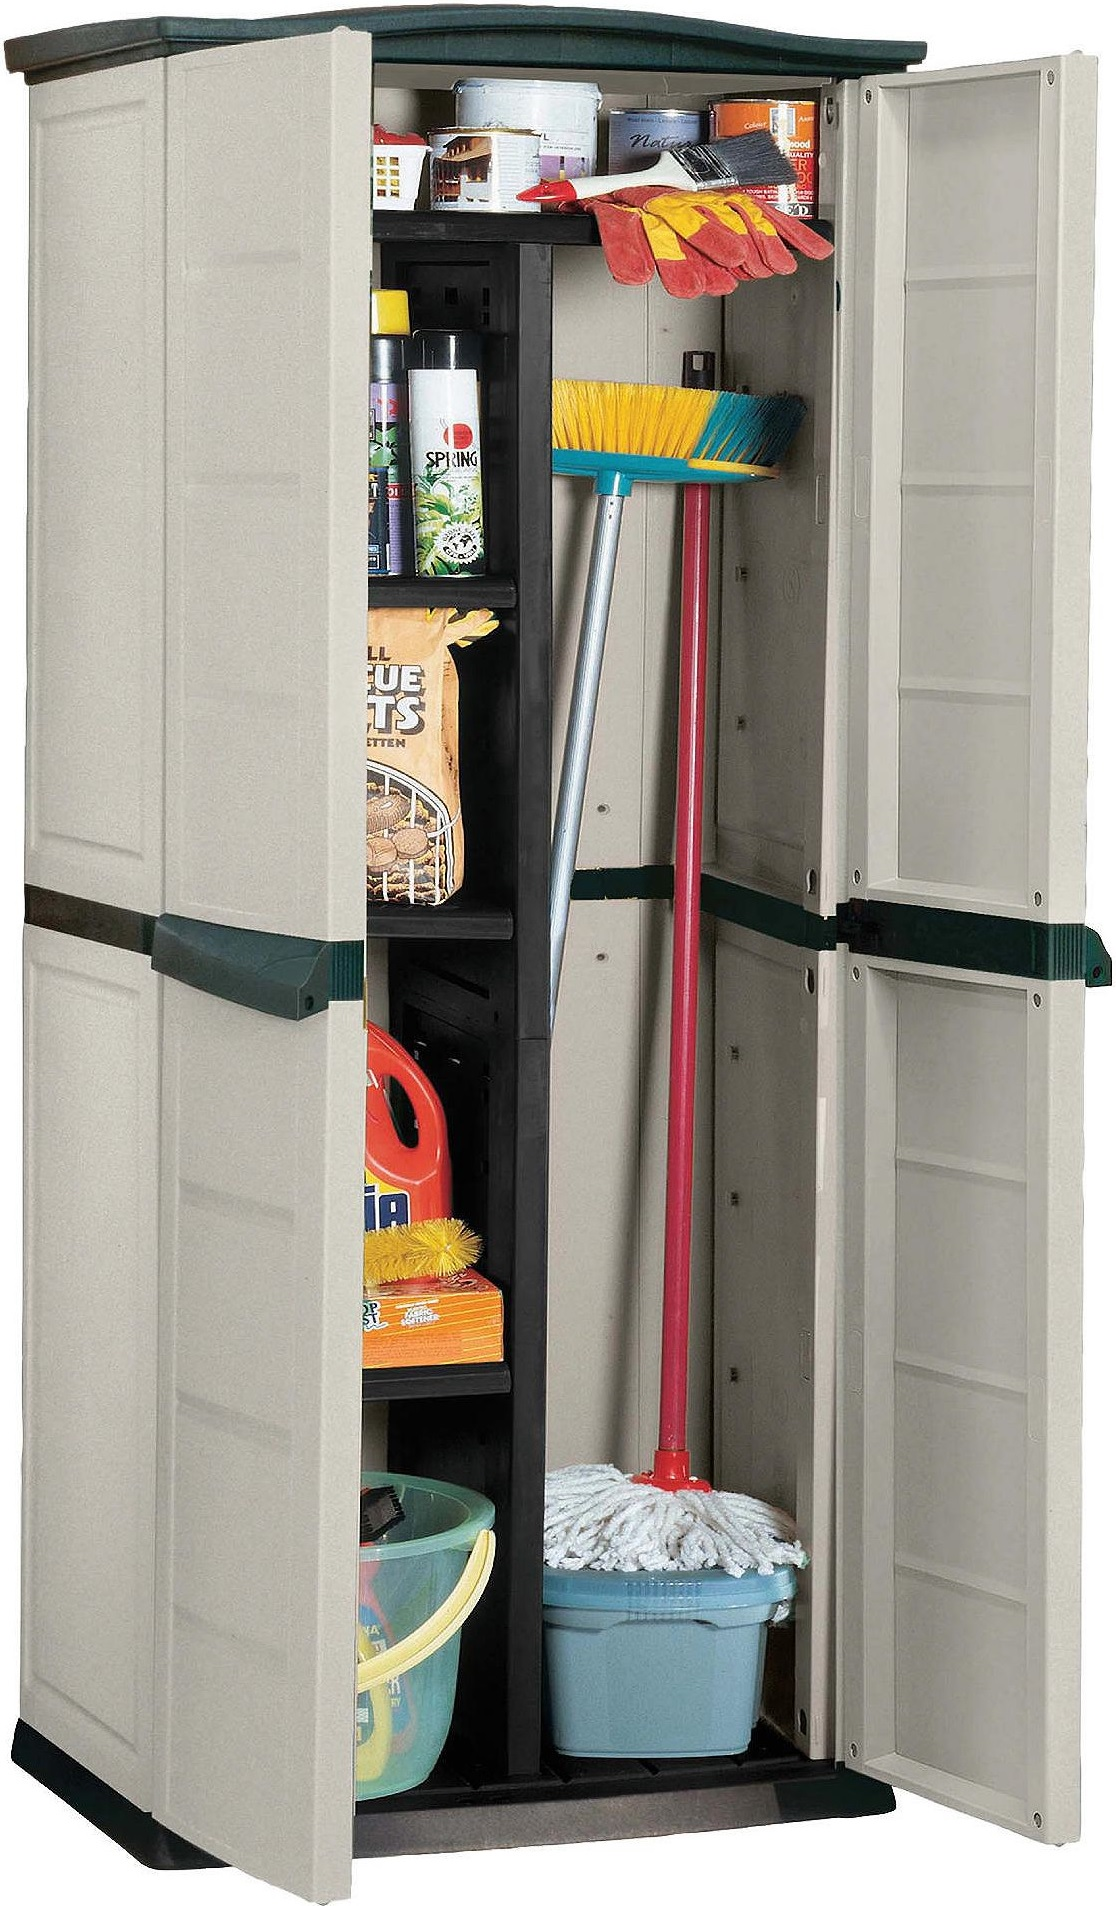 Keter Plastic Compact Garden Storage Shed Utility Cabinet